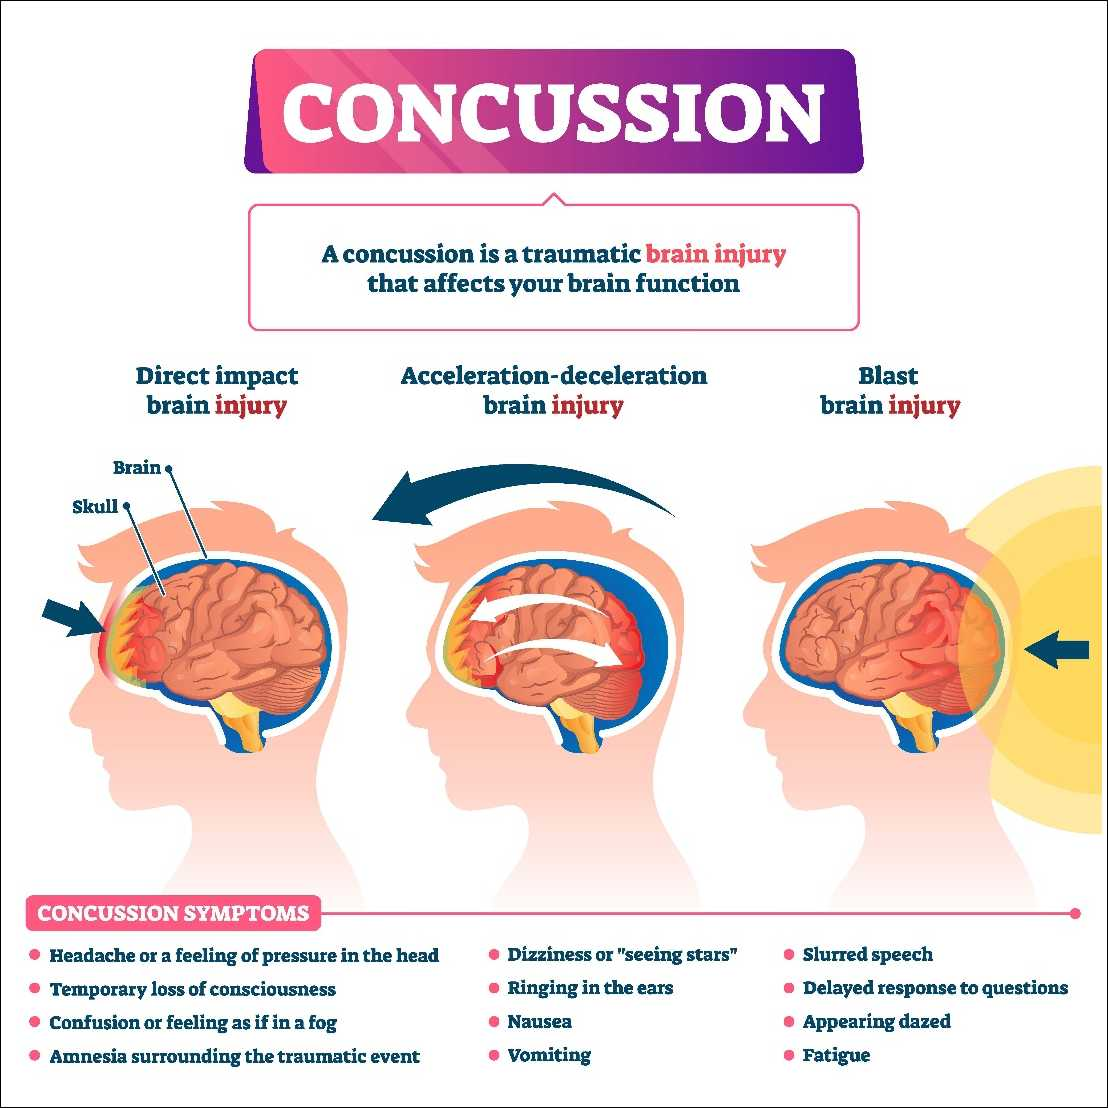 a concussion is traumatic brain injury